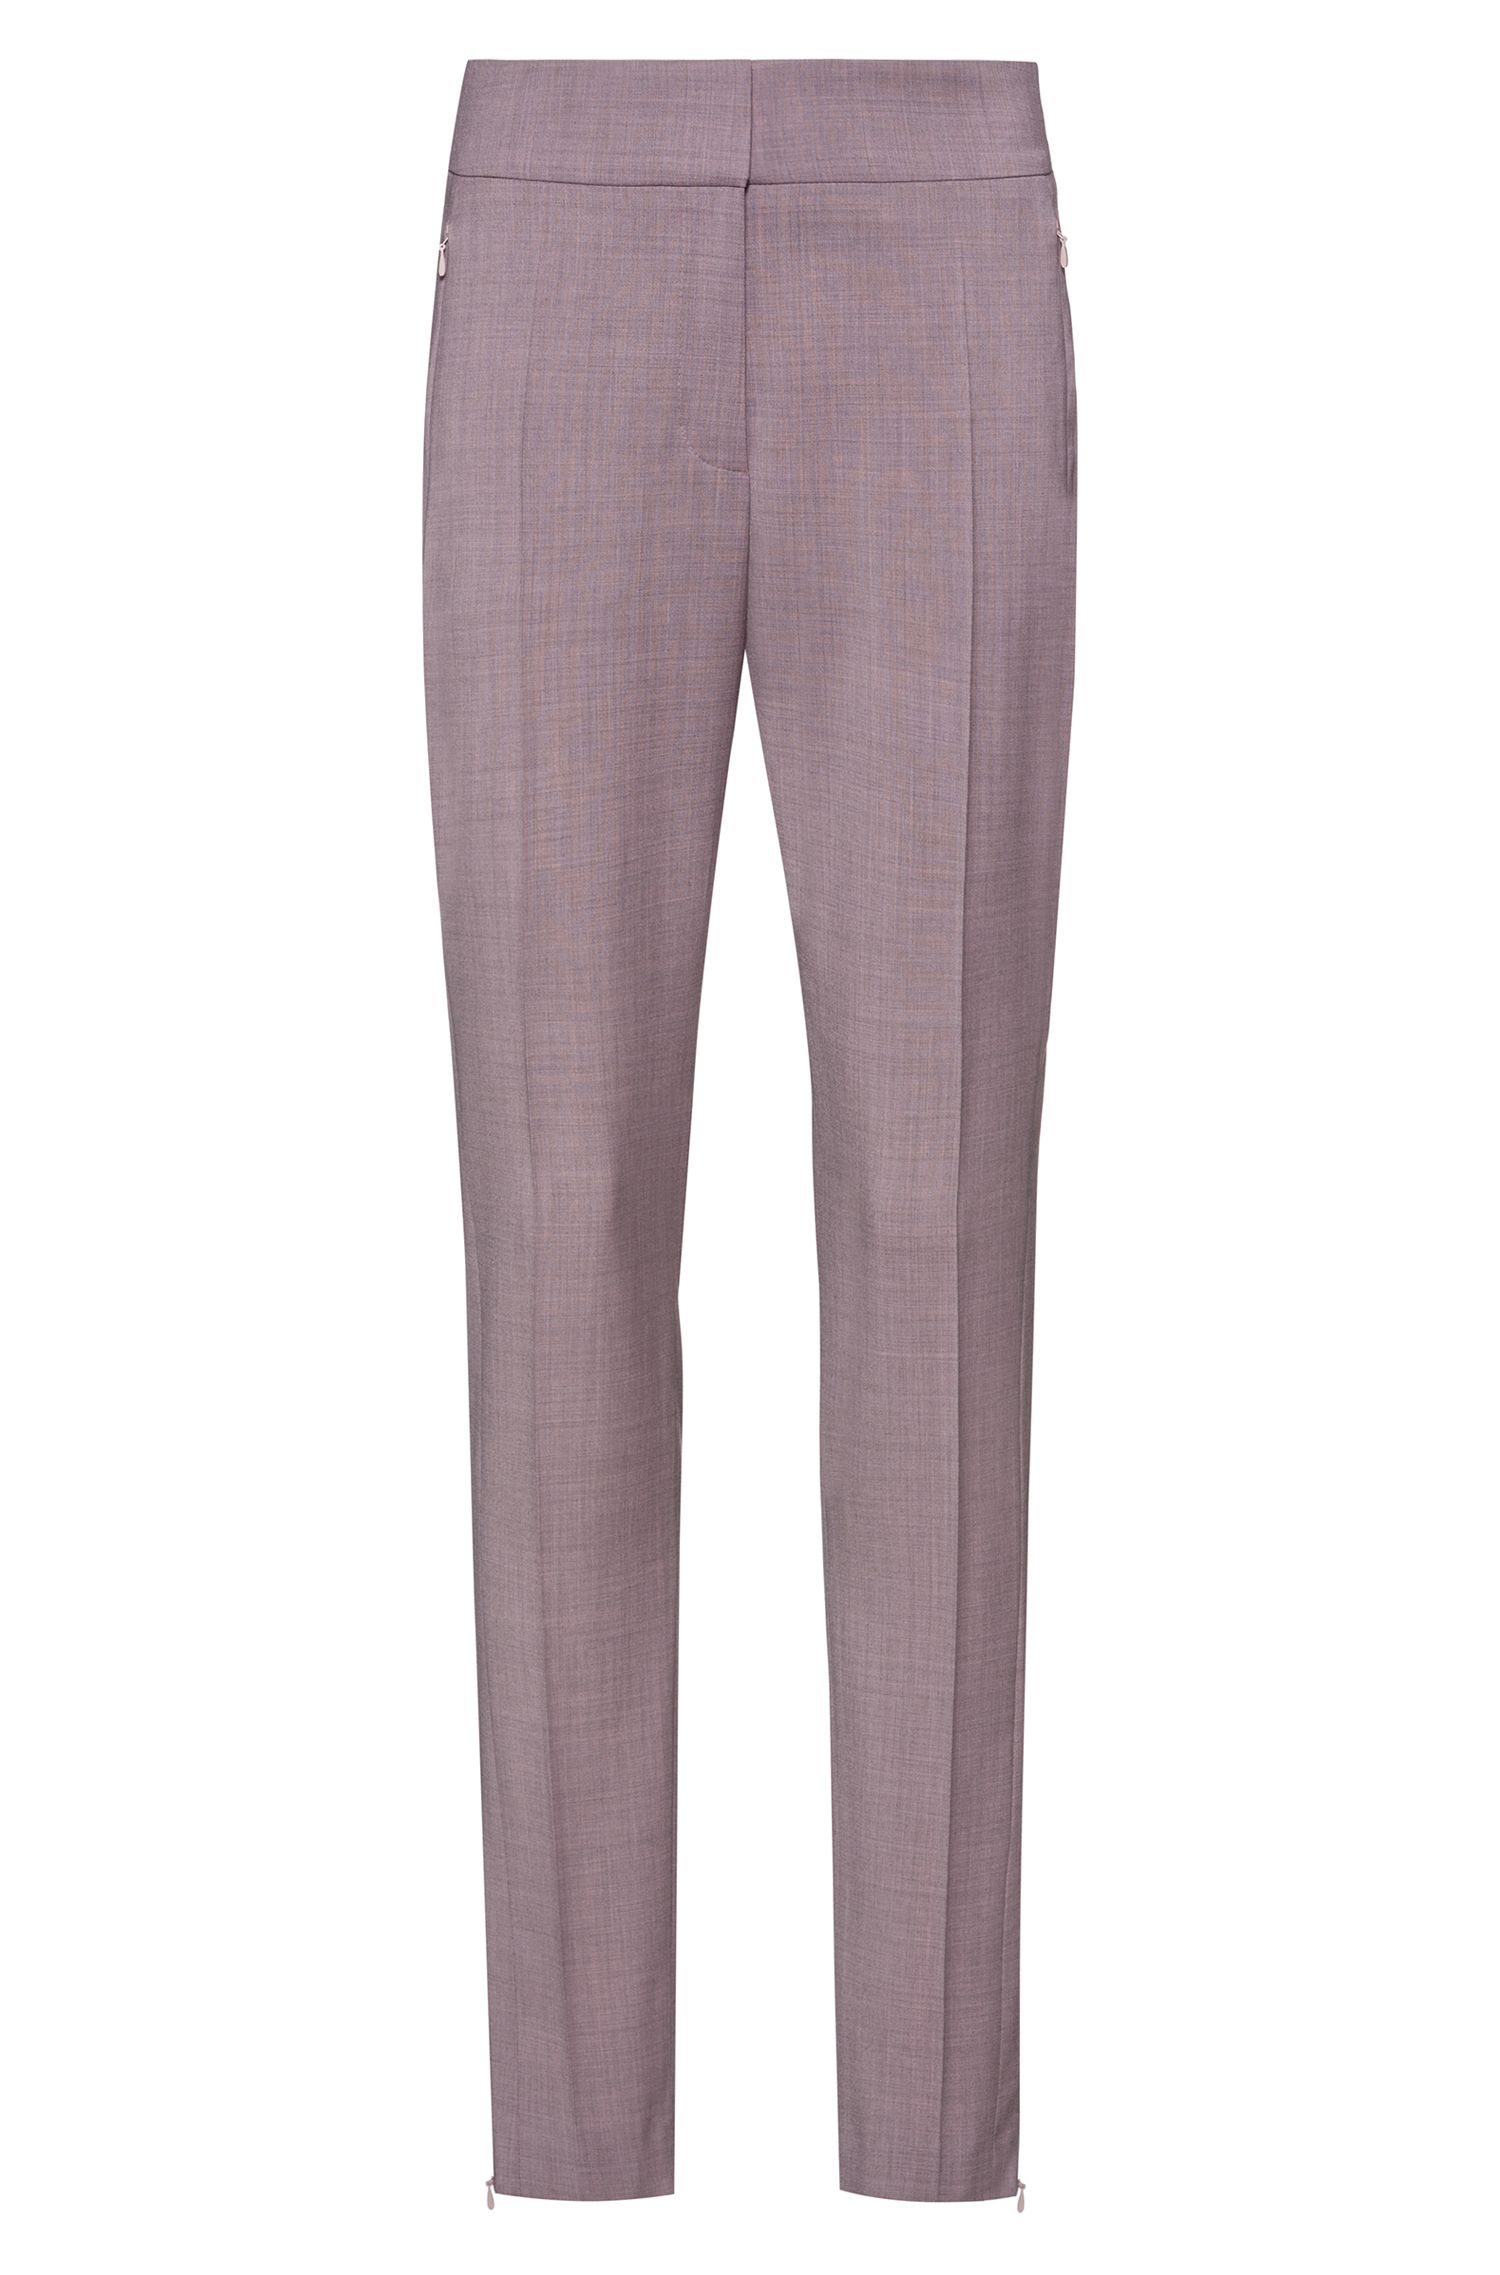 Fashion Show slim-leg trousers with zipped hems, light pink